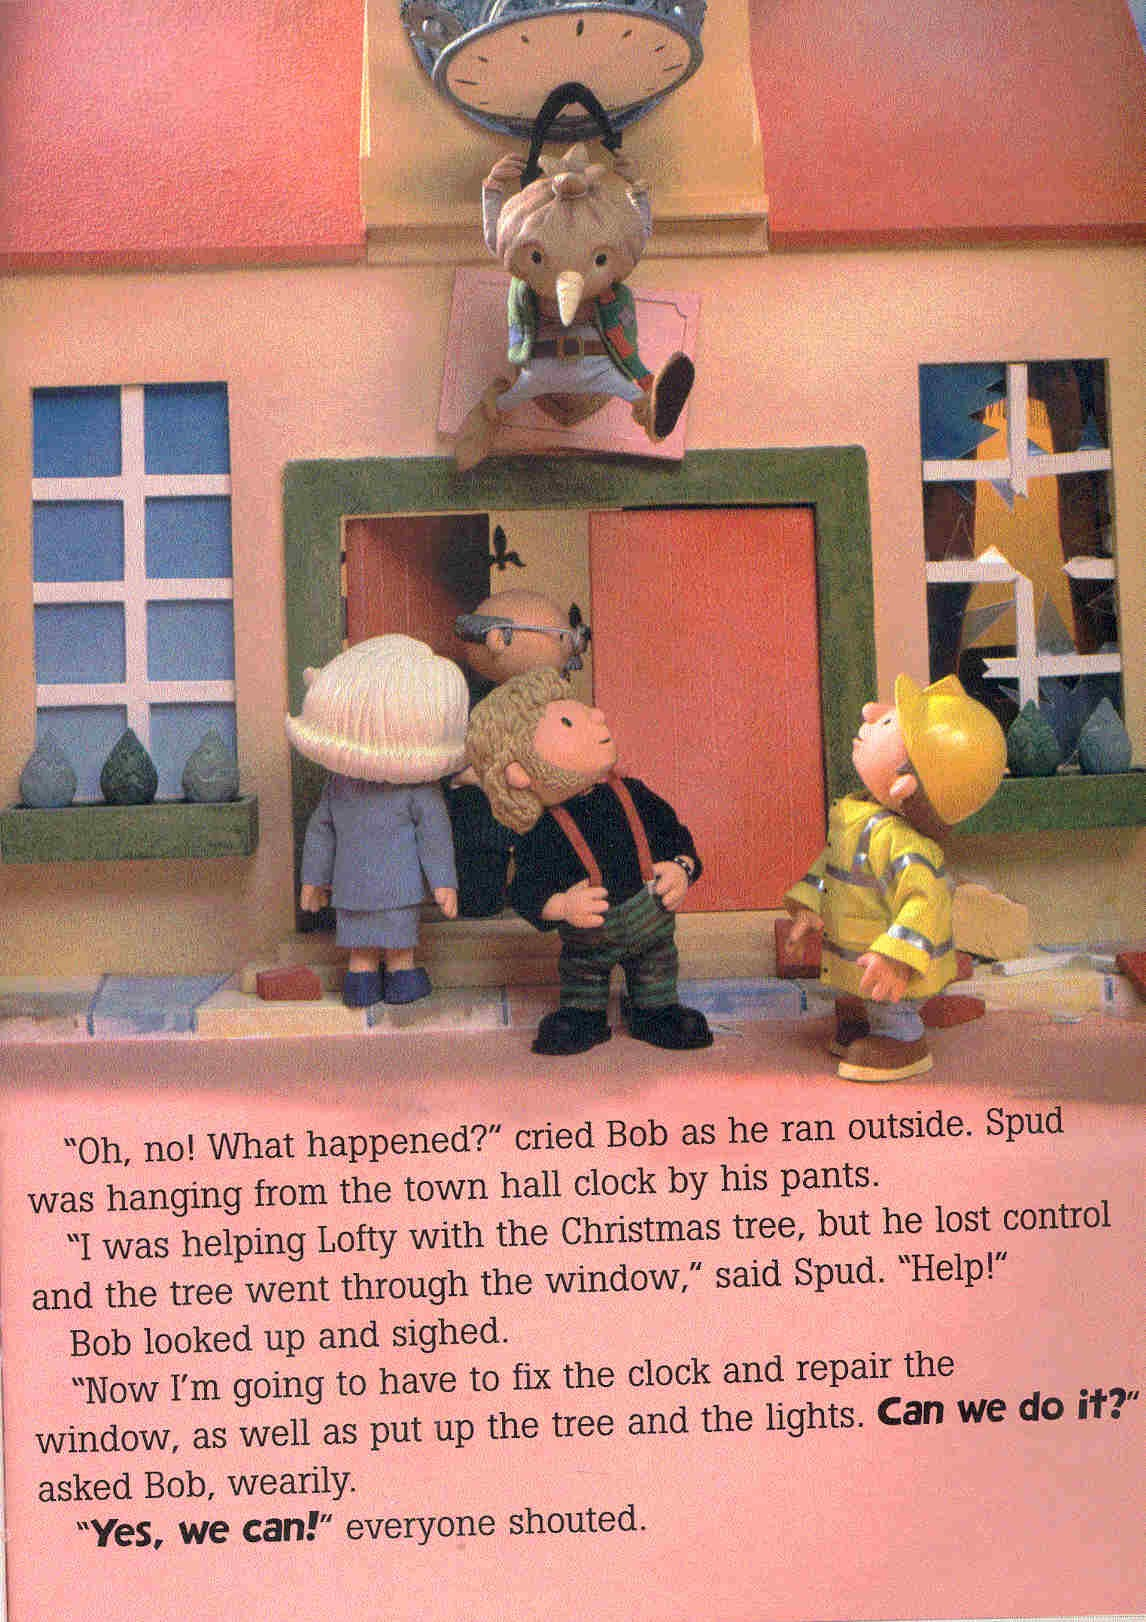 bob the builder a christmas to remember simon and schuster 2003 see larger image - Bob The Builder A Christmas To Remember